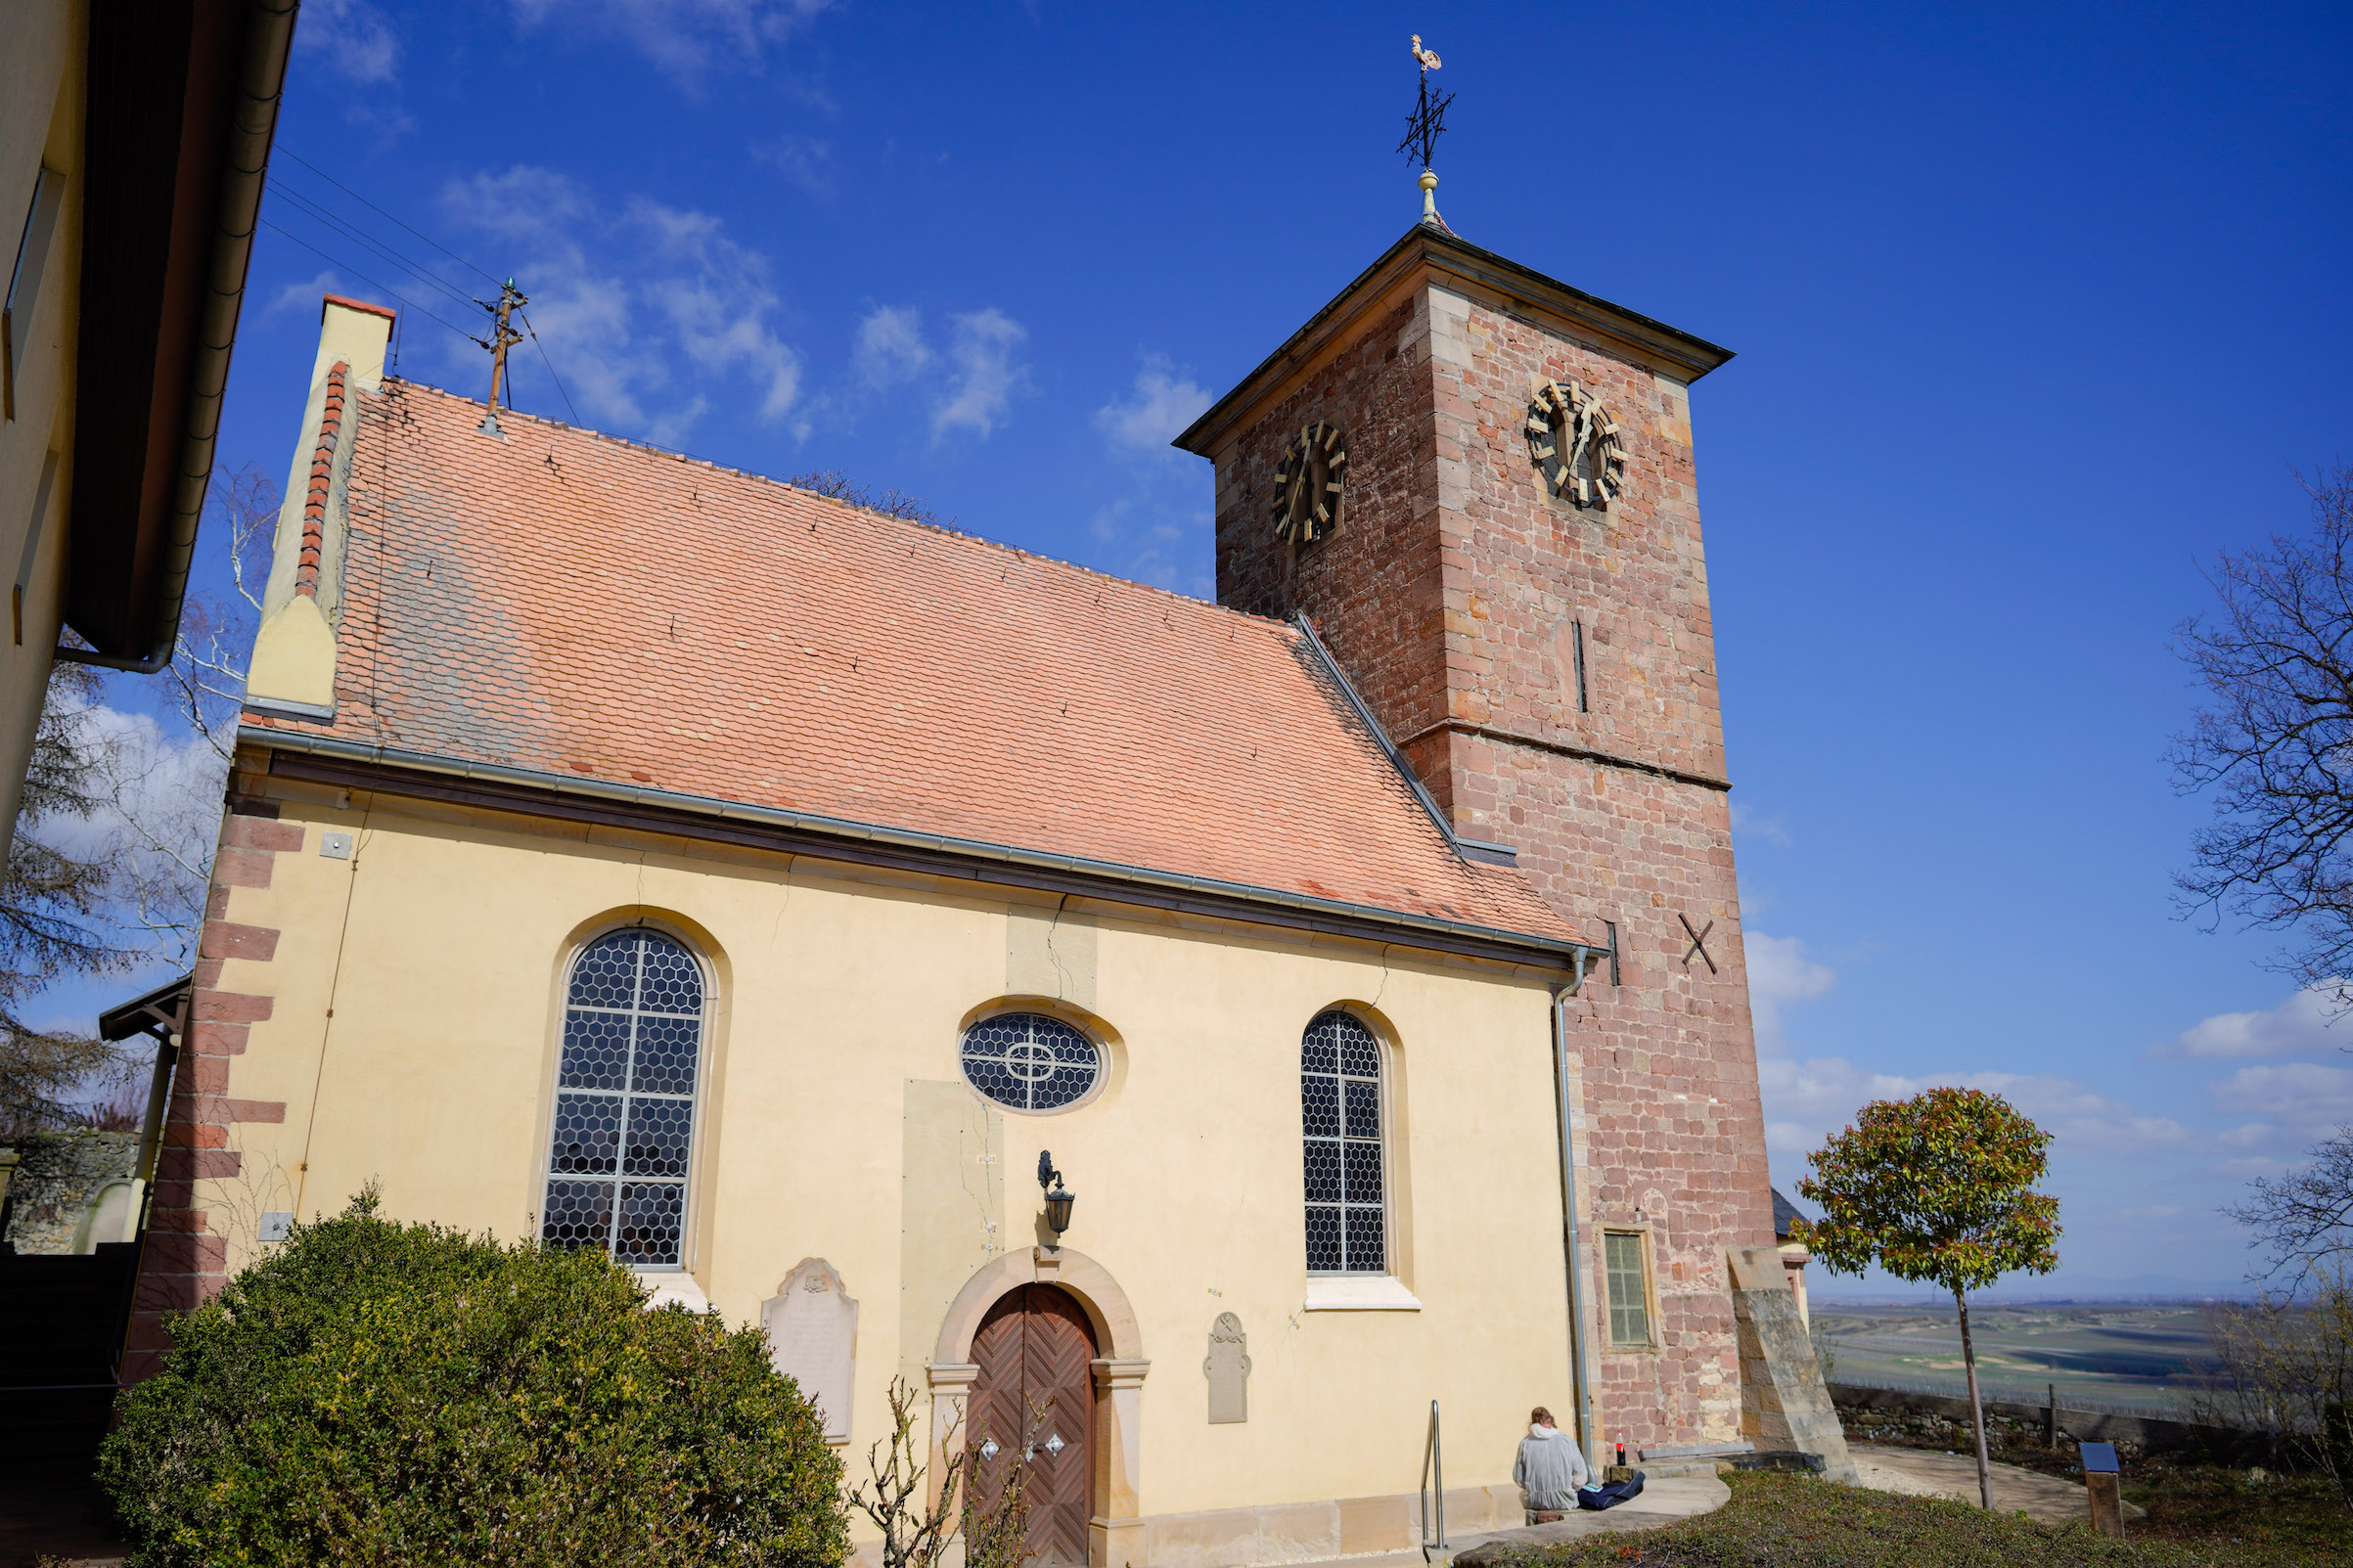 The Protestant Church in Herxheim am Berg, in front of which an information board had recently been erected, on March 19, 2019. The plaque explains how the bell with the inscription  Everything for the Fatherland. Adolf Hitler  had entered the church and that it would remain there as a reminder for the future.